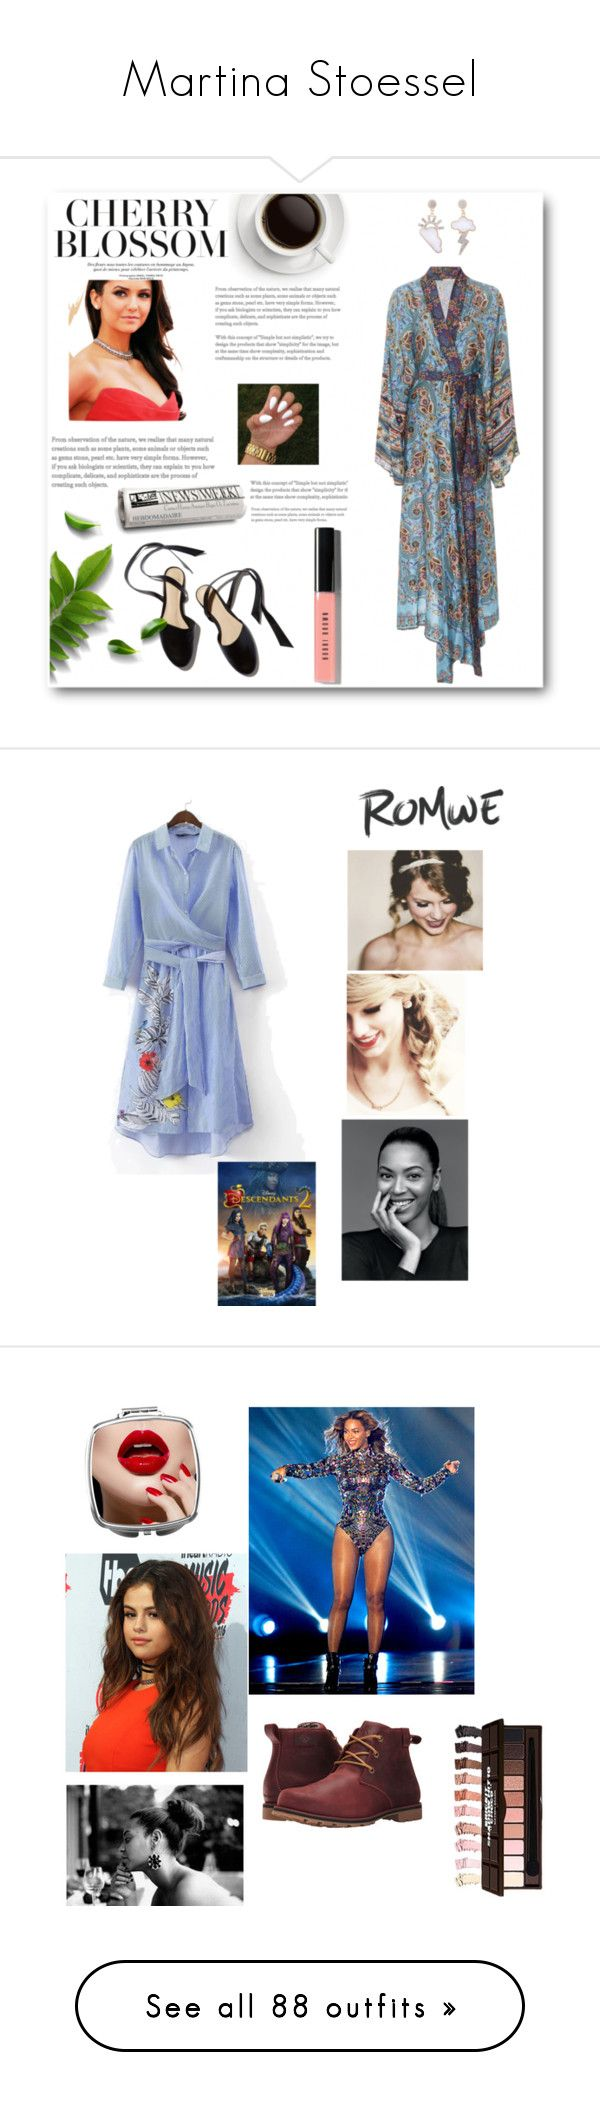 """Martina Stoessel"" by lady-shadylady ❤ liked on Polyvore featuring Bobbi Brown Cosmetics, Columbia, Local Heroes, adidas, Deborah Lippmann, Madewell, men's fashion, menswear, Balmain and Converse"